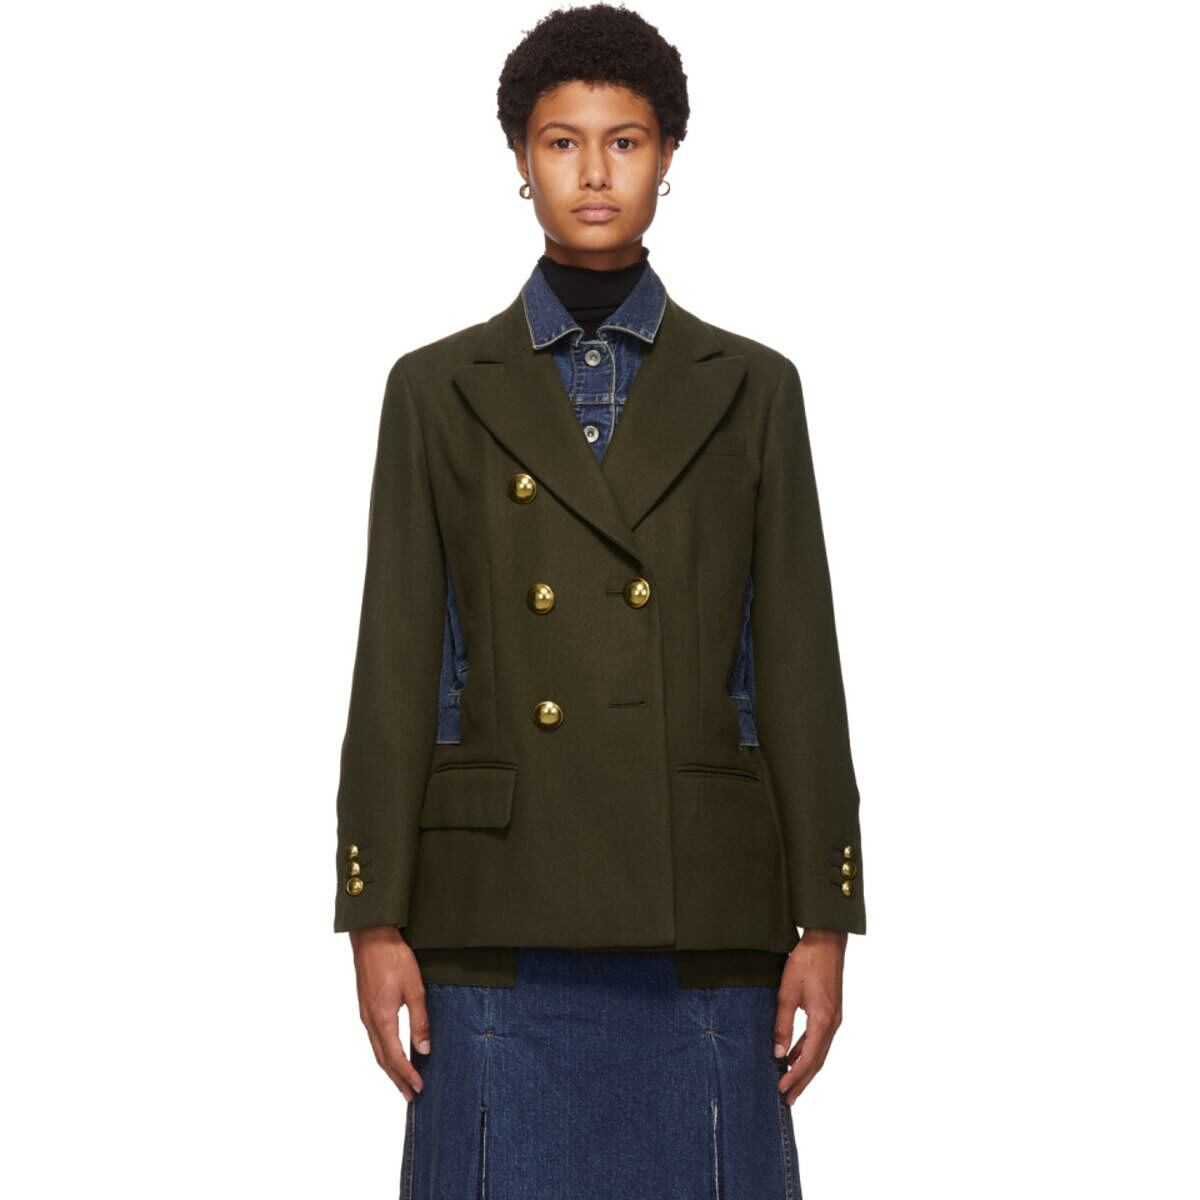 Sacai Khaki and Blue Wool Denim Combo Jacket Ssense USA WOMEN Women FASHION Womens BLAZER